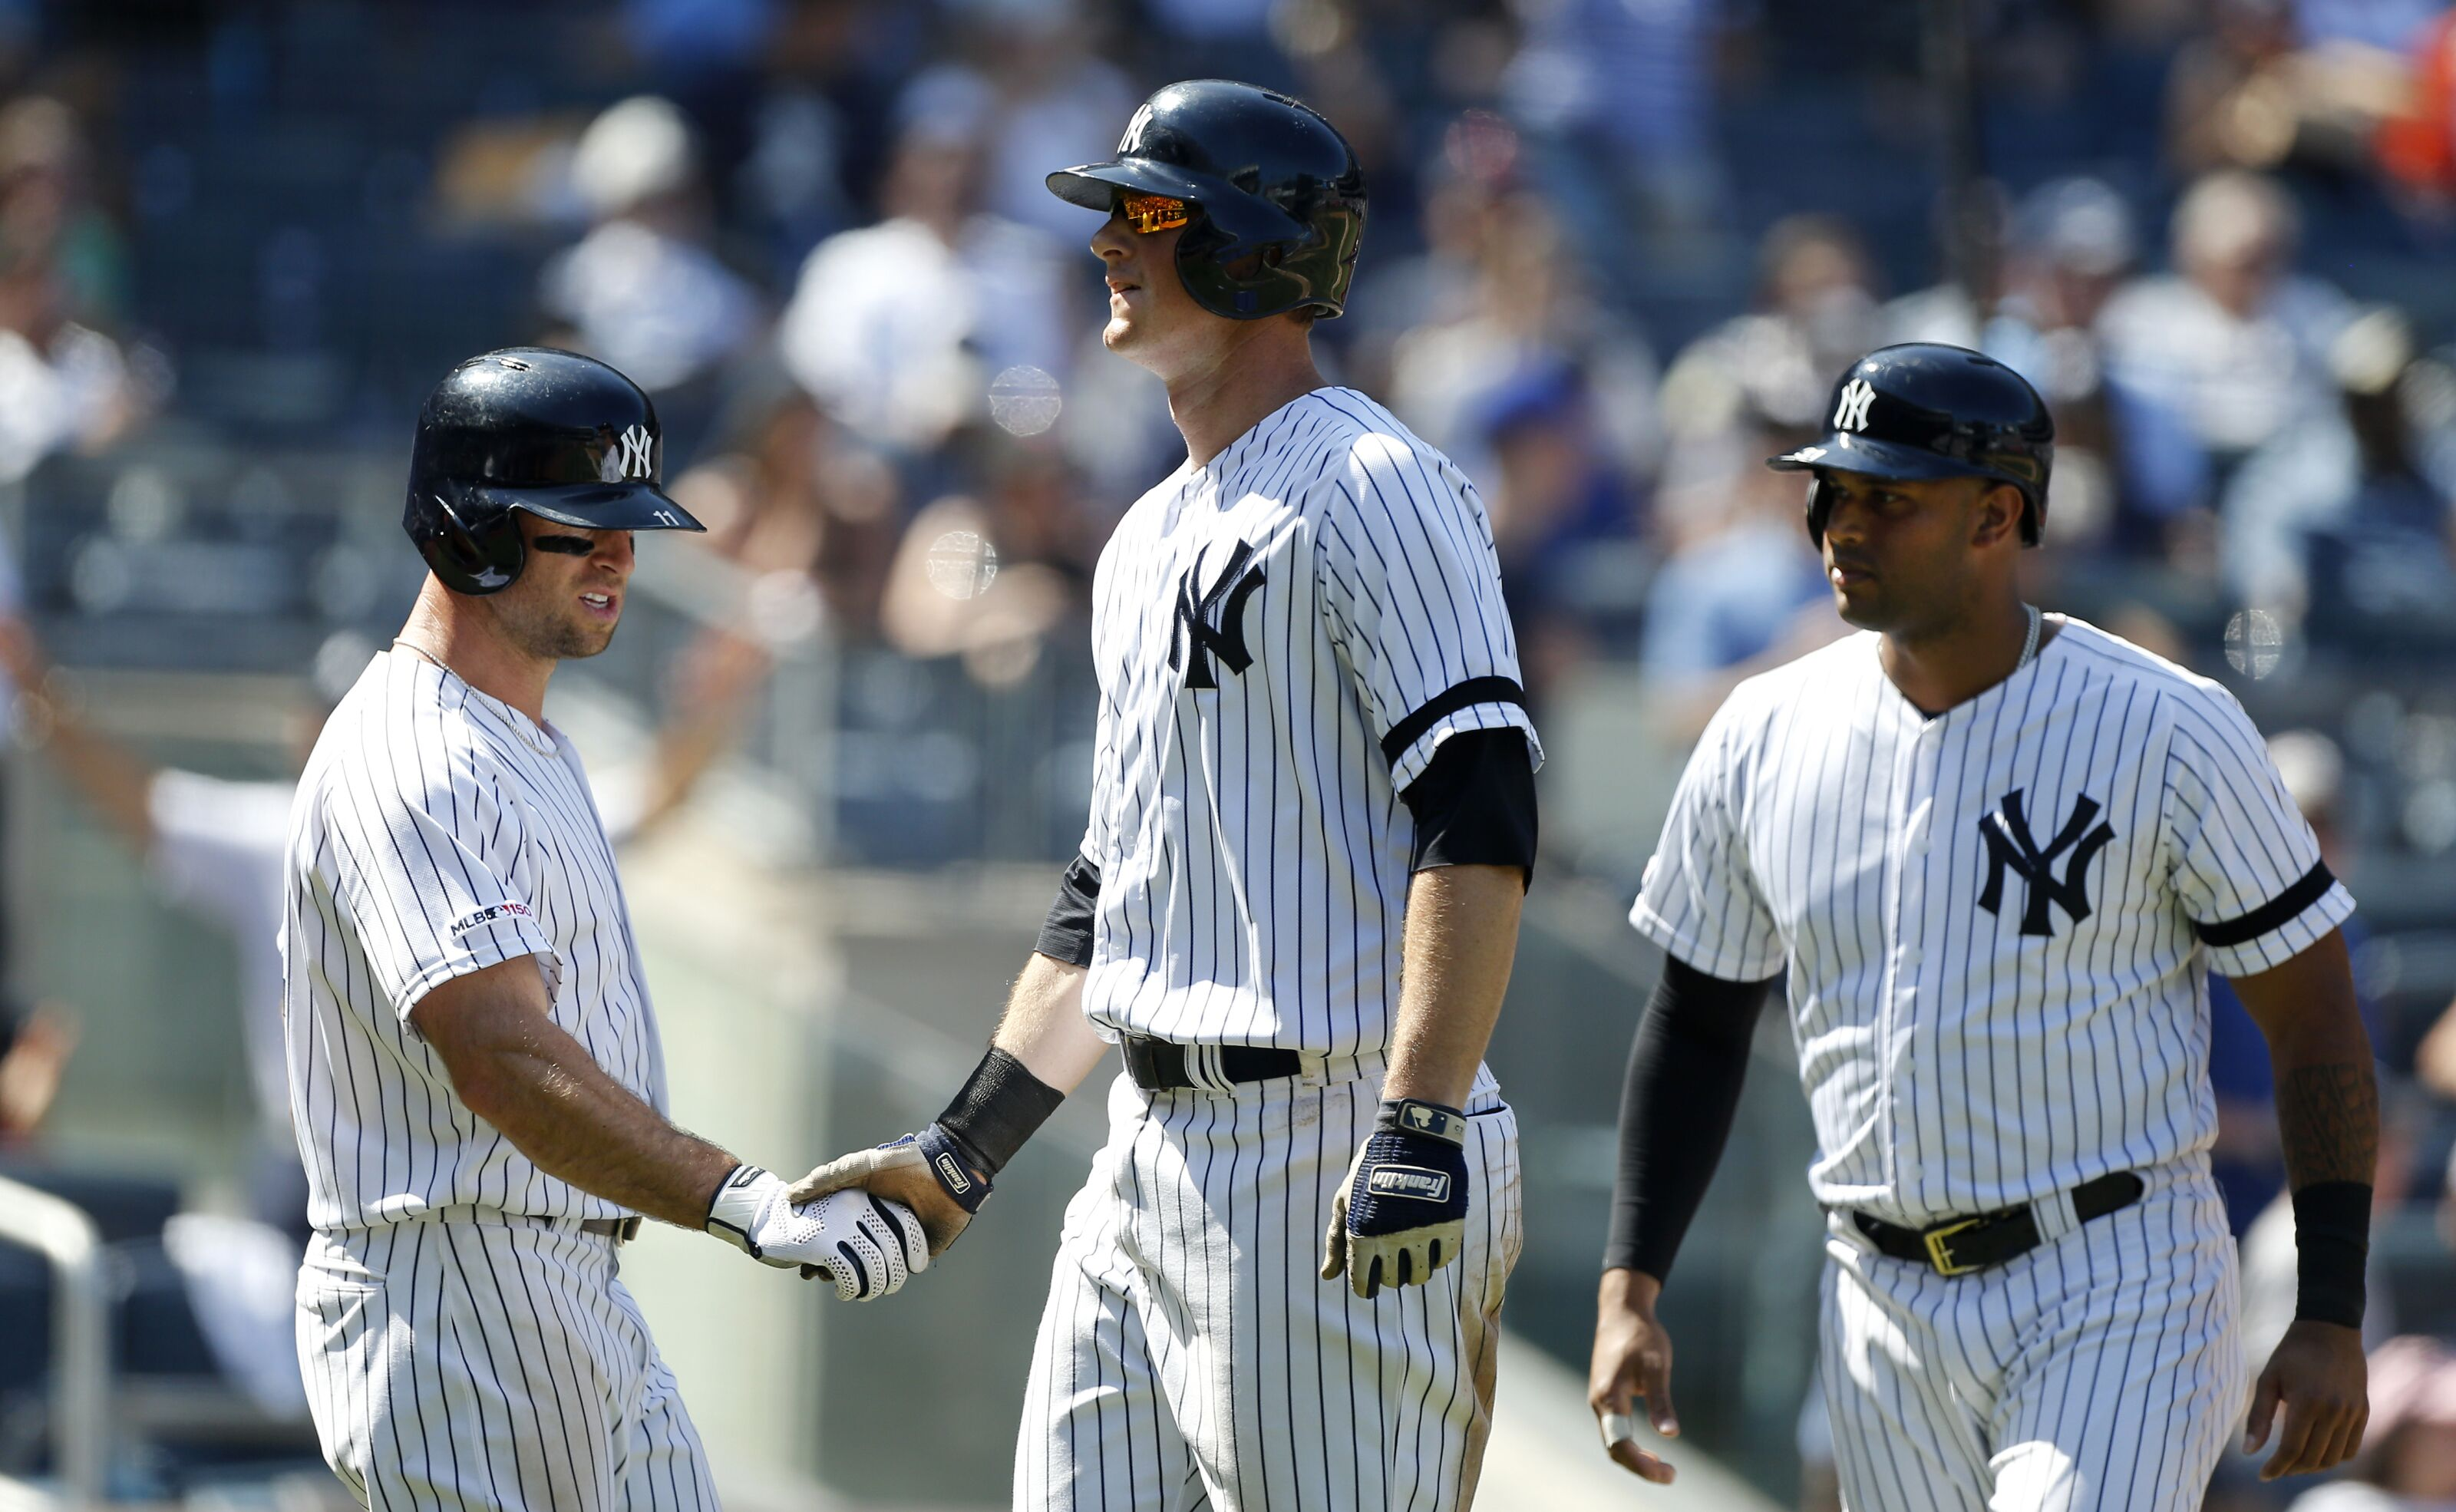 Yankees set a franchise record by homering in 26th straight game